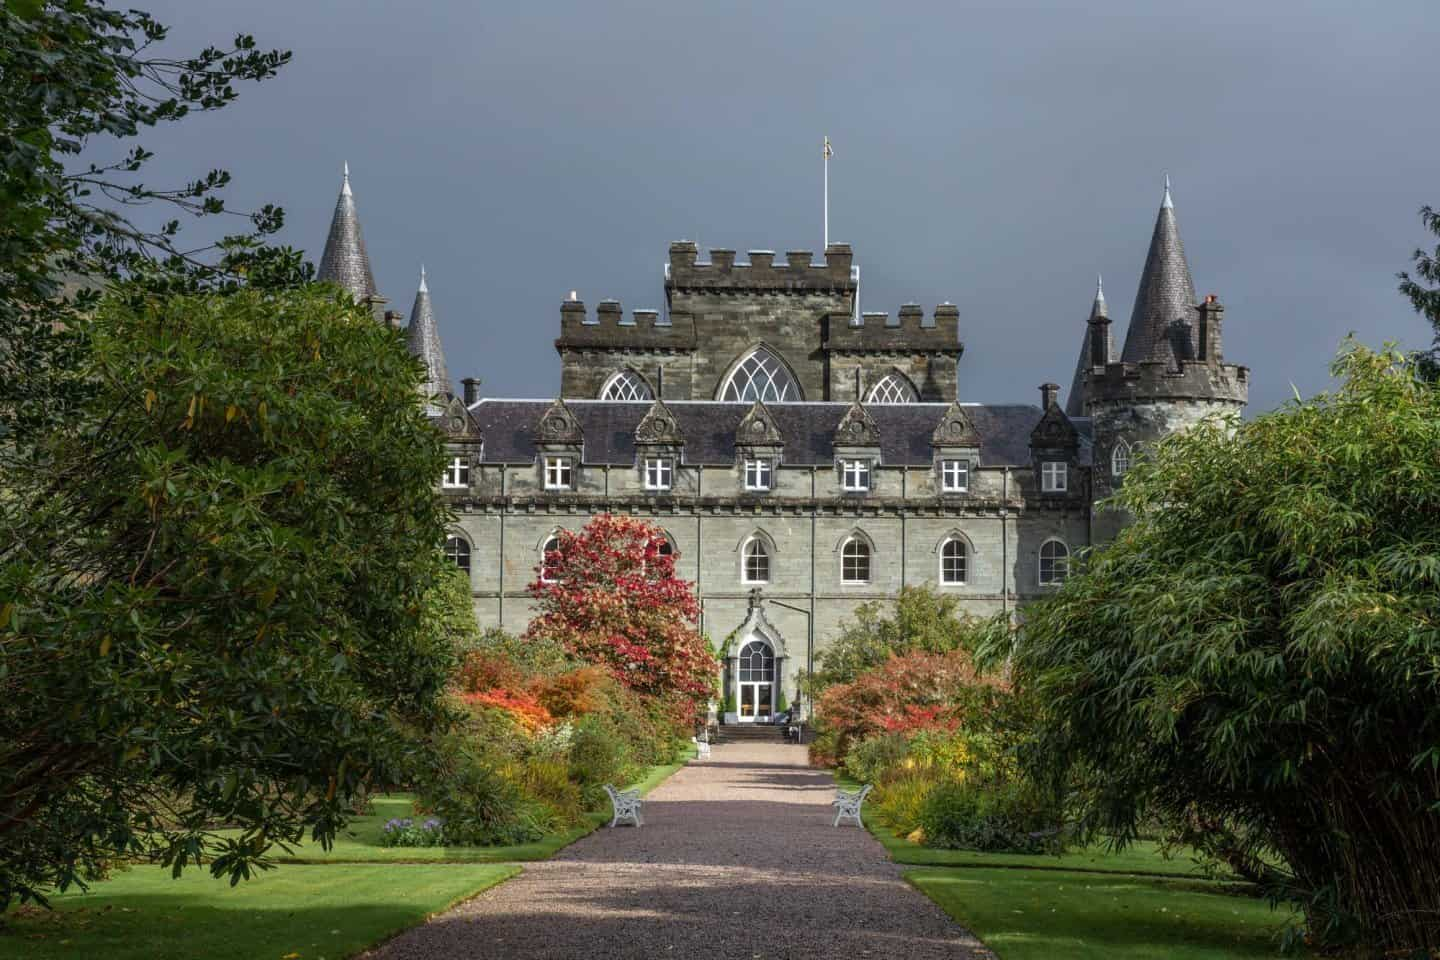 Top 20 castles in Scotland: Viewing Inveraray Castle and garden through the gate on the way to the castle.